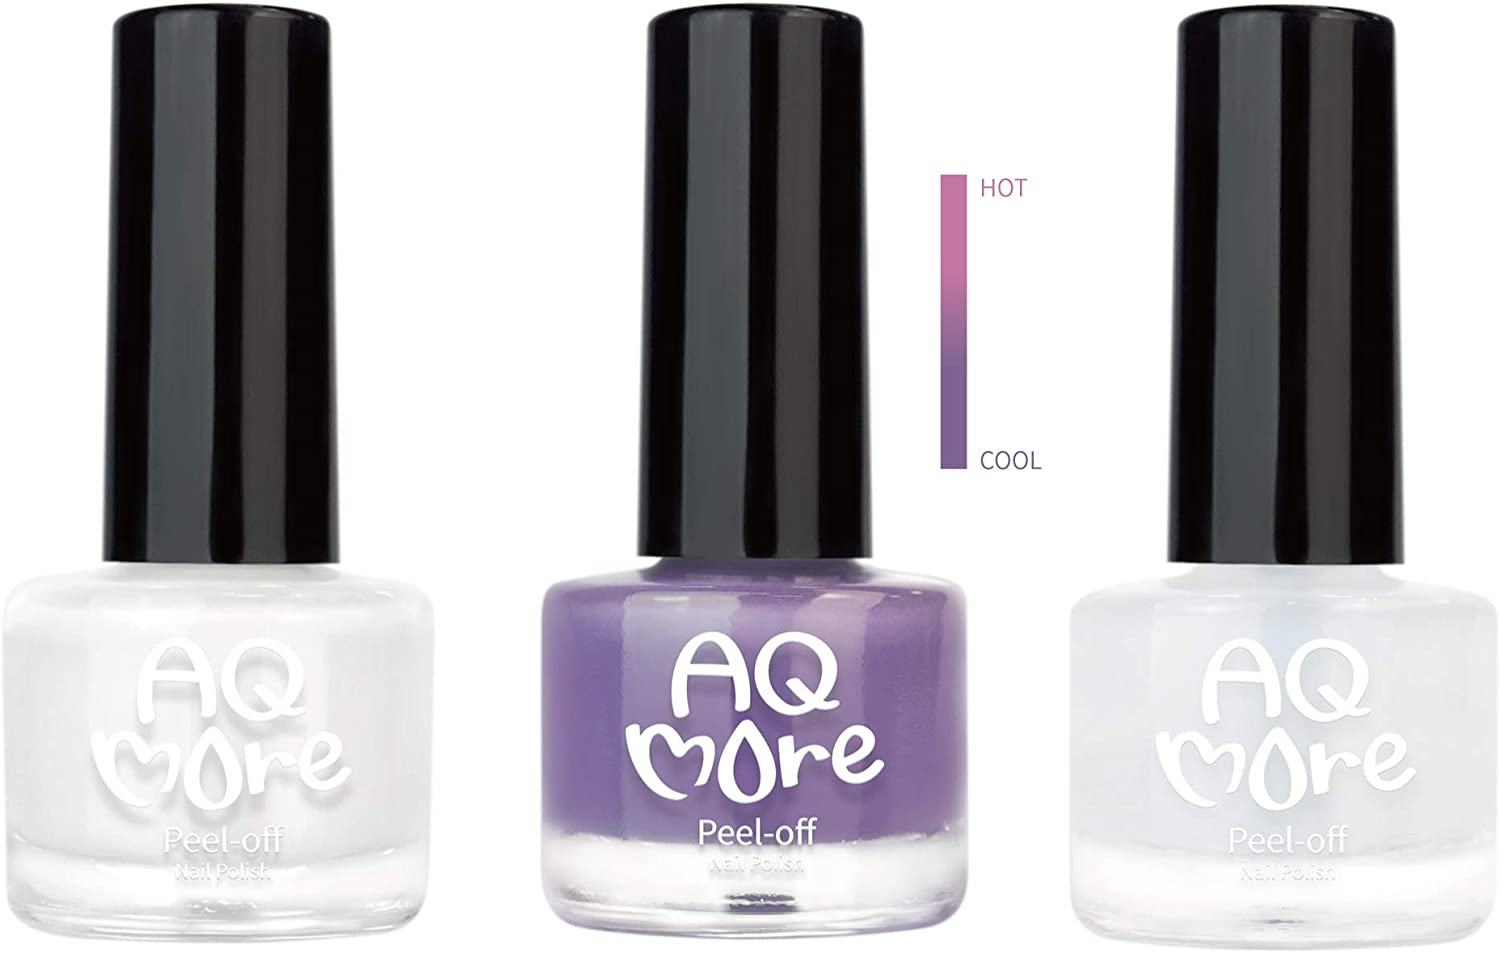 AQMORE Non Toxic Water Based Peel Off Nail Polish - Stays on for Days, Gel-like Shine, Dries in Minutes, Fragrance & Paraben Free, Kid Safe, 2 colors with Top Coat (0.20 fl oz/Bottle) - Magical Heart